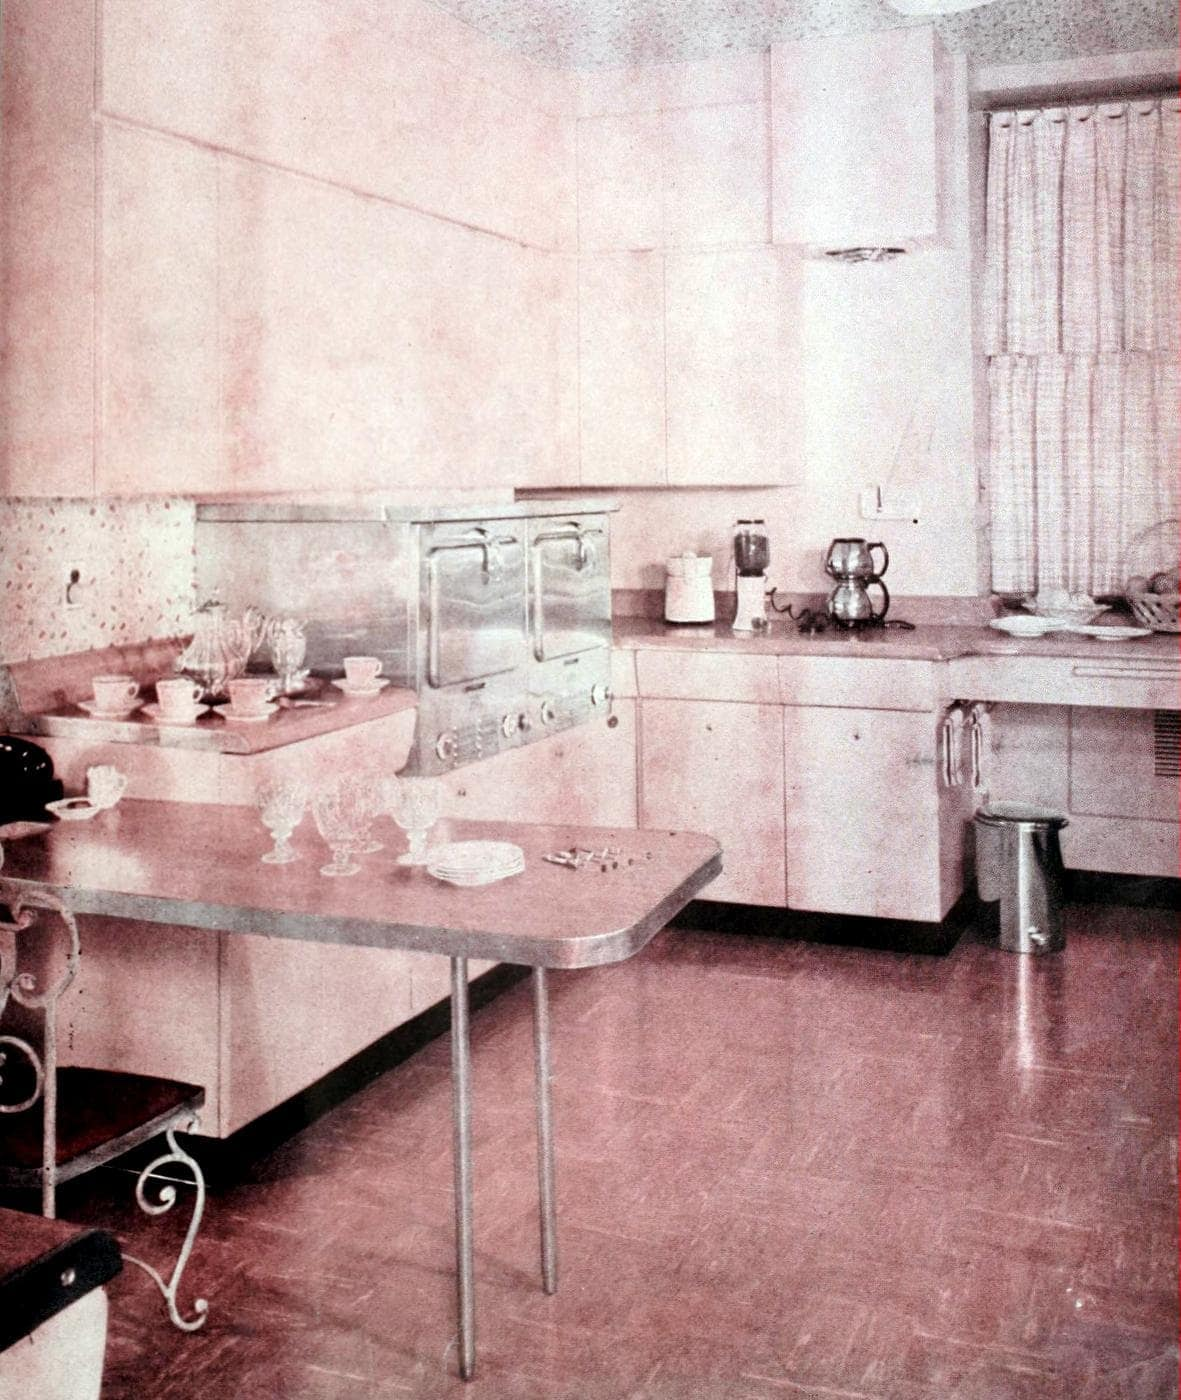 Vintage pink kitchen decor for the 50s home (2)